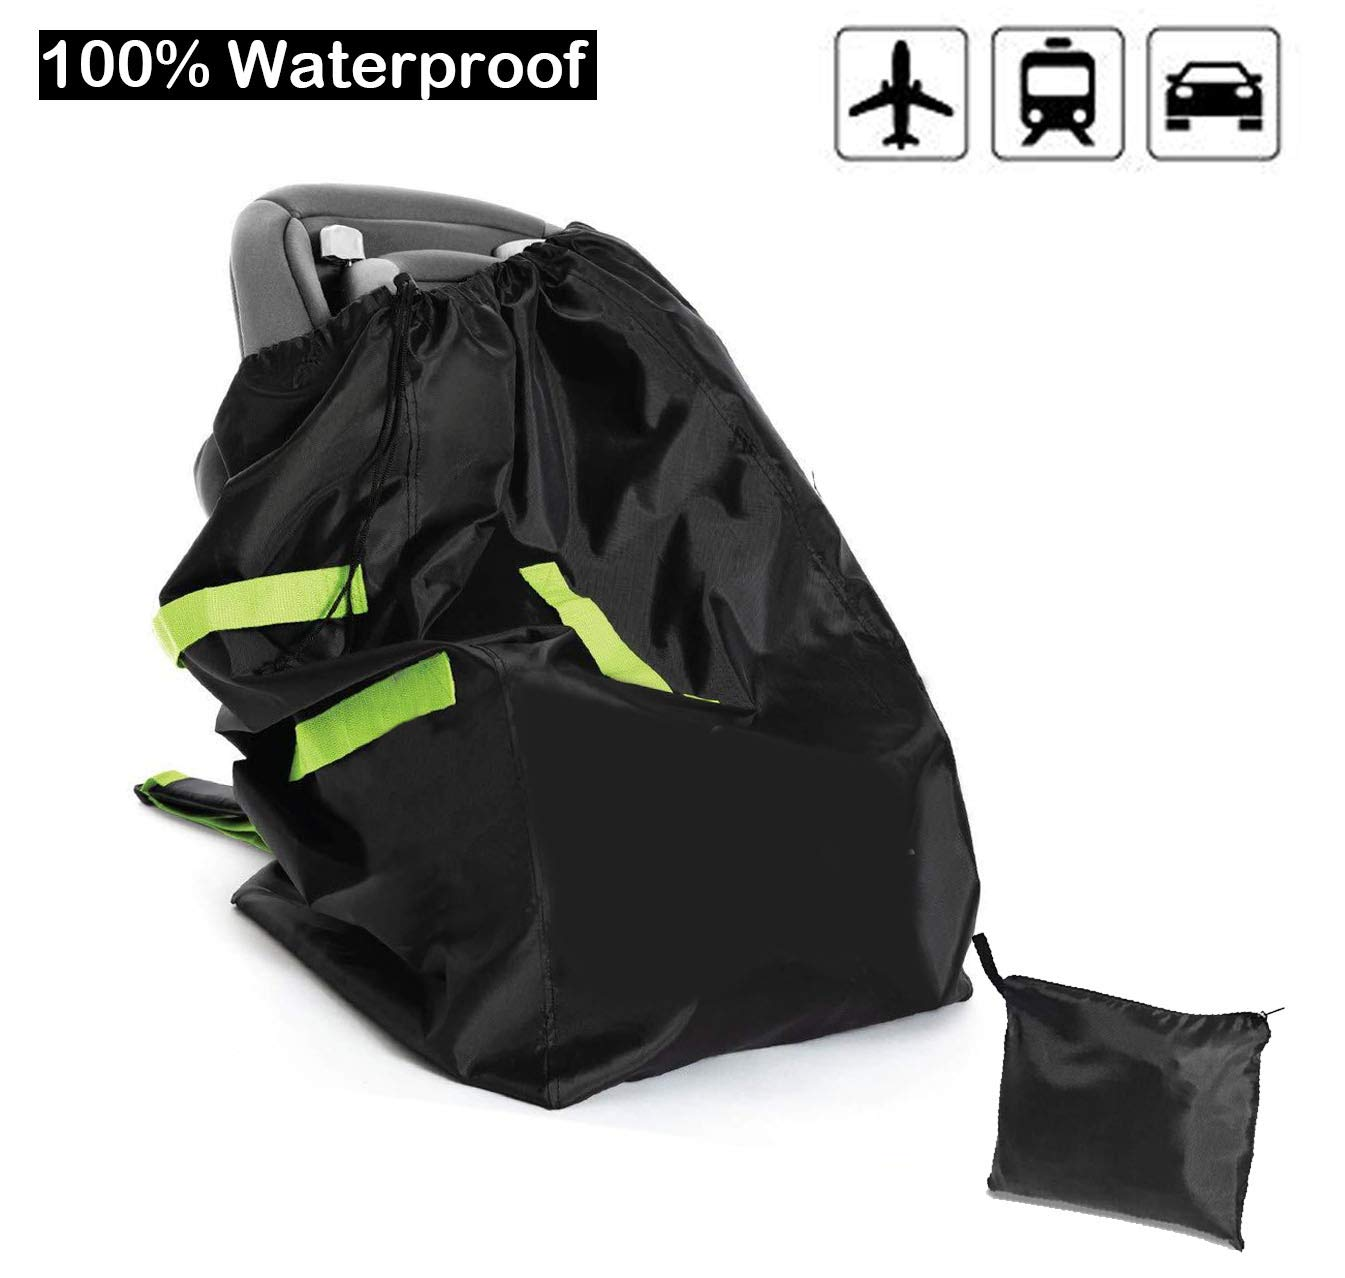 Car Seat Travel Carrier Bag Cover Airplane Gate Check Backpack for Traveling, Airport Safety Deluxe, Big, Waterproof Safety Wrap-Protector| Durable 420D Oxford Fabric, Fits Car Seats, Infant Carriers by Haibin Xiongdi